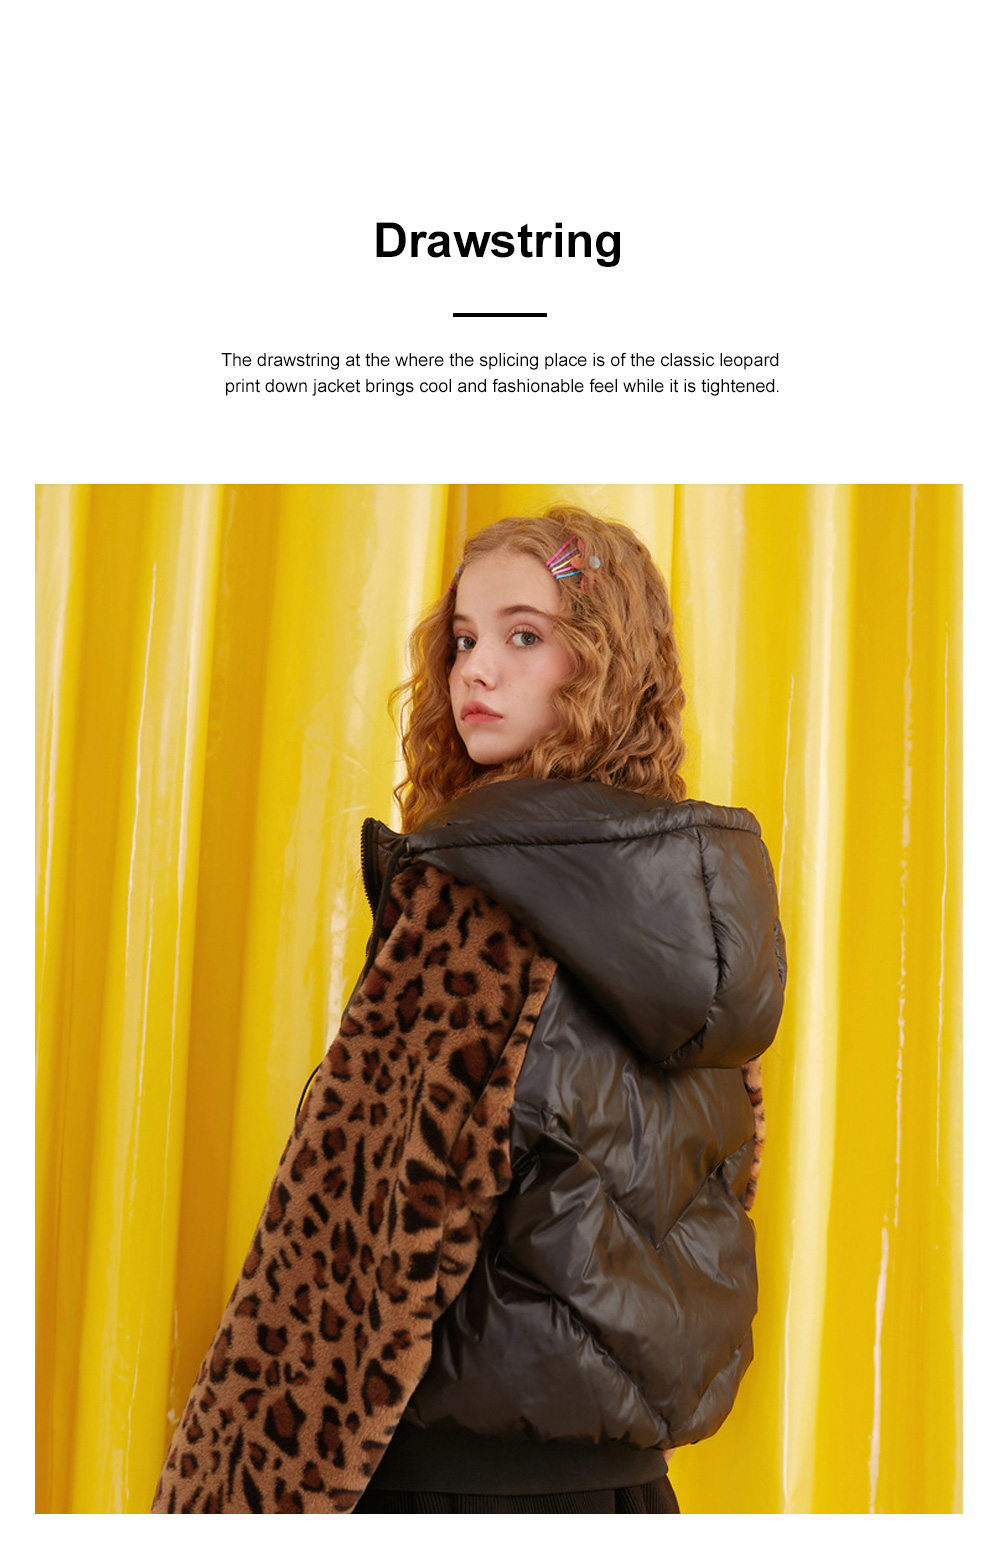 ELF SACK Classic Leopard Print Down Jacket for Women Winter Wear Thickened Splicing Hoody Down Coat Thermal Down Jacket 5